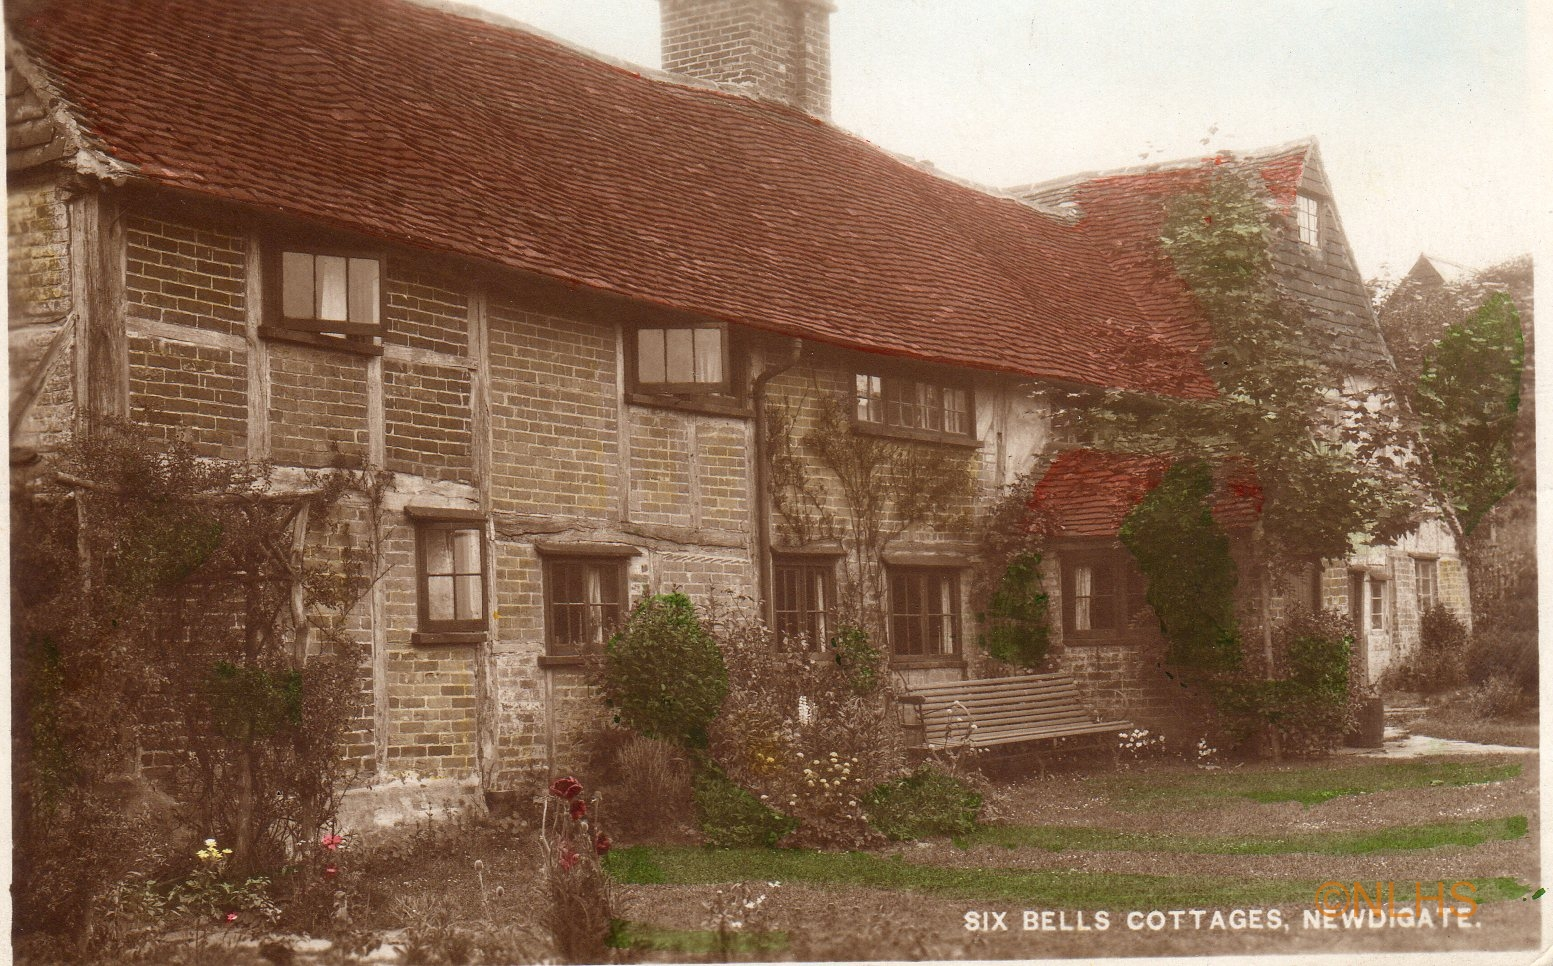 Six Bells Cottages c.1921